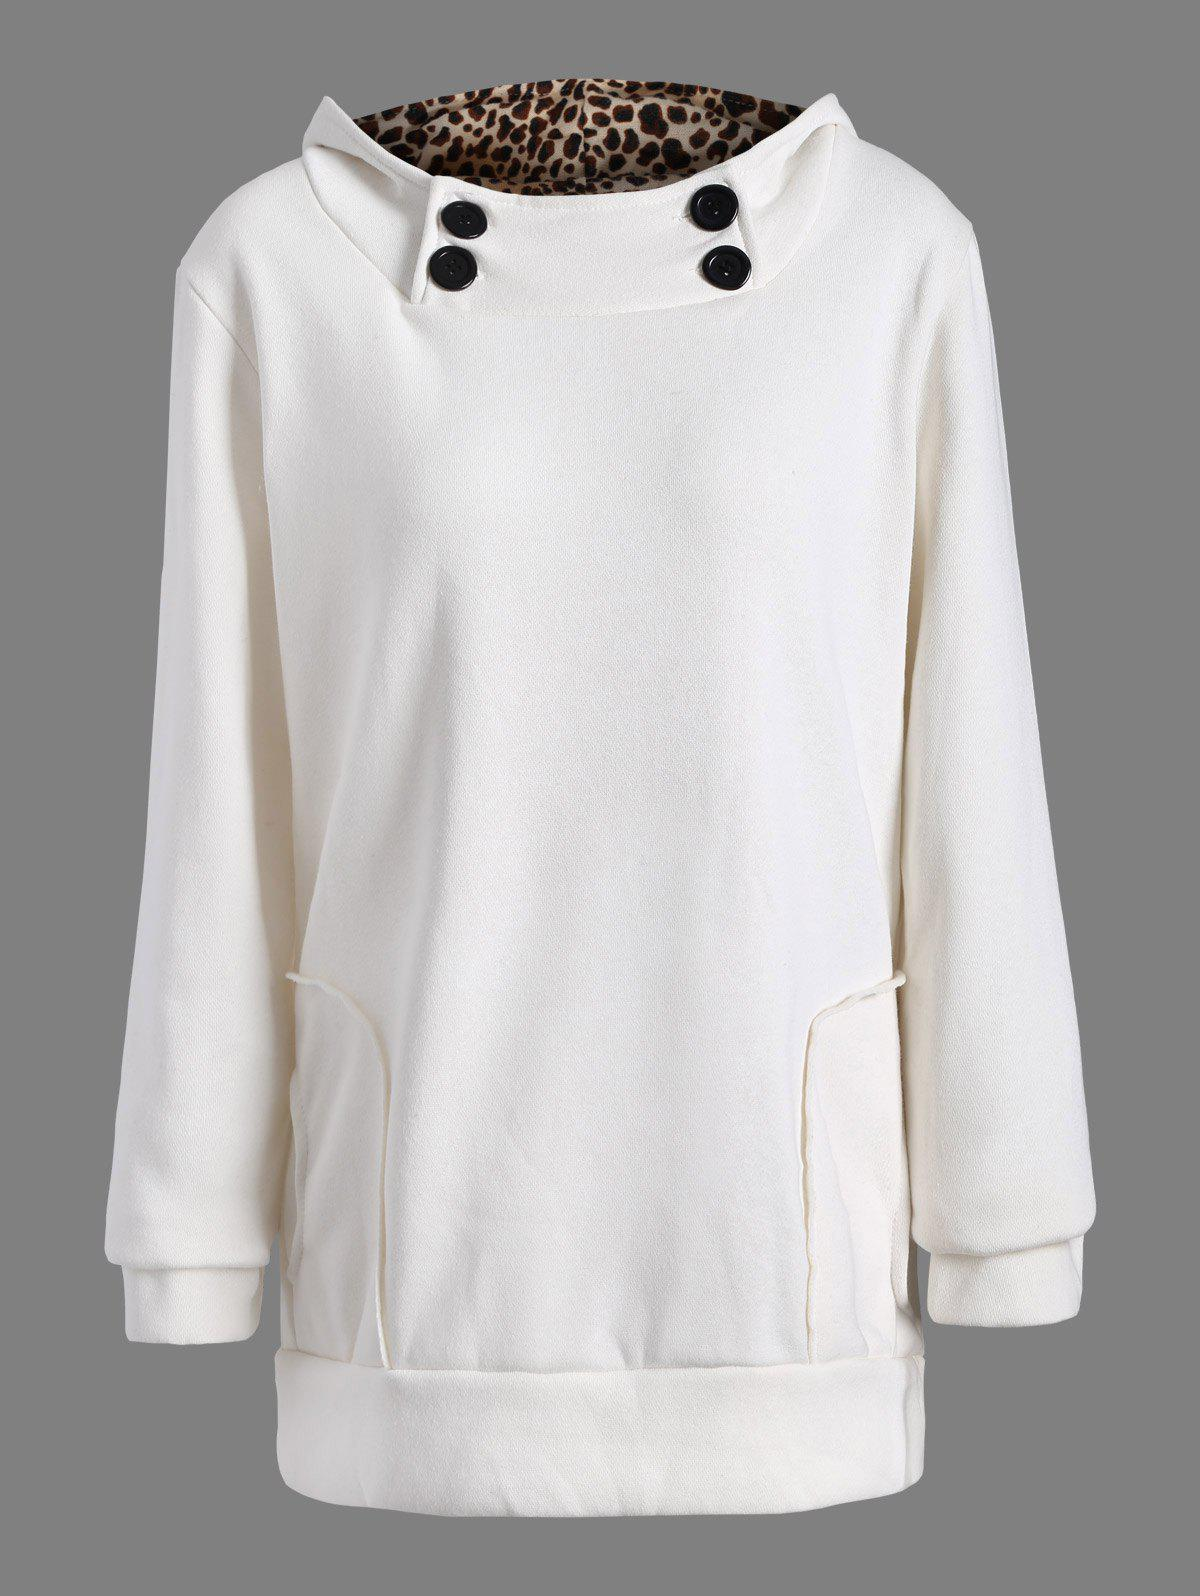 Solid Color Loose Fitting Leopard Print Hoodie For WomenWOMEN<br><br>Size: ONE SIZE; Color: WHITE; Material: Cotton Blend; Shirt Length: Regular; Sleeve Length: Full; Style: Fashion; Pattern Style: Leopard; Weight: 0.363kg; Package Contents: 1 x Hoodie;